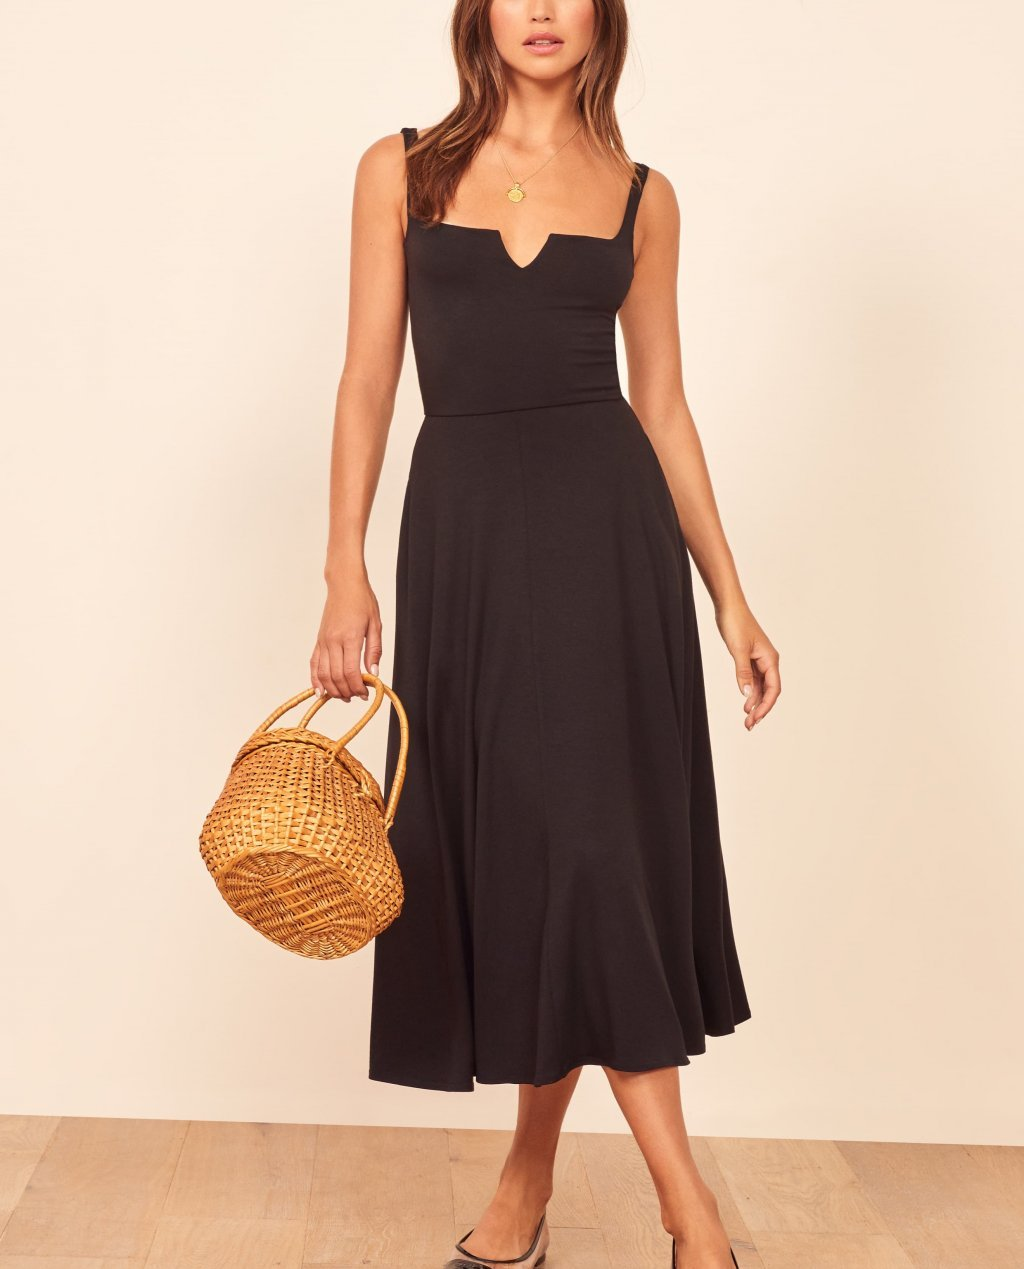 Reformation Zarina Notch Neck Dress